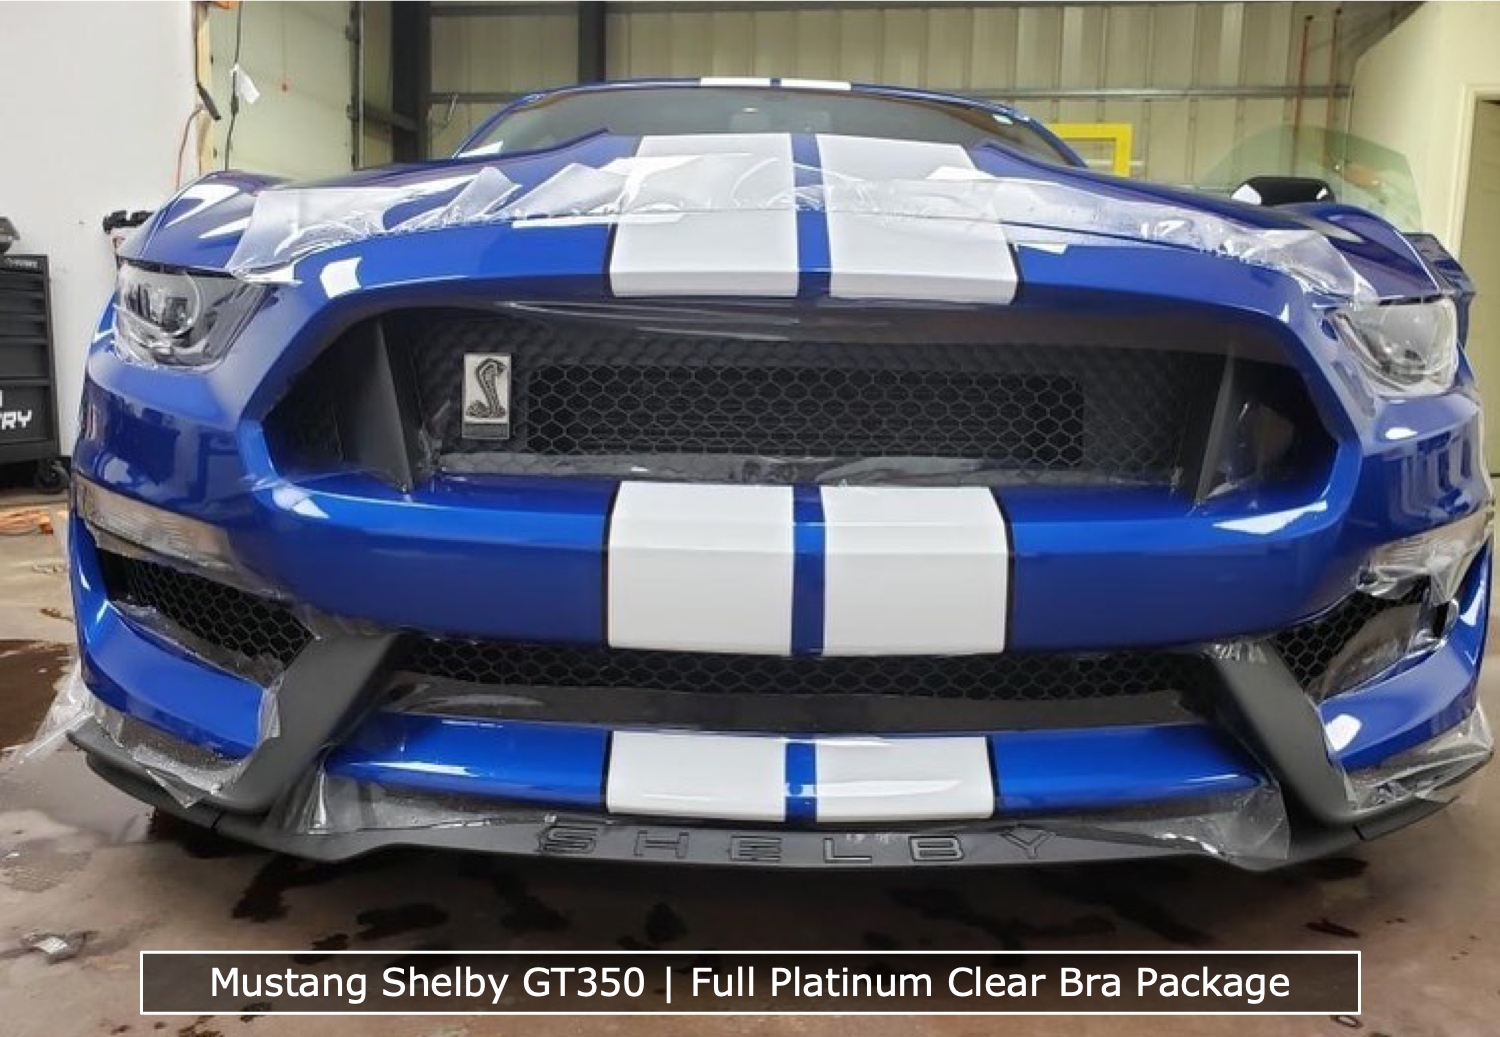 Shelby GT350 Clear Bra Installation Happening